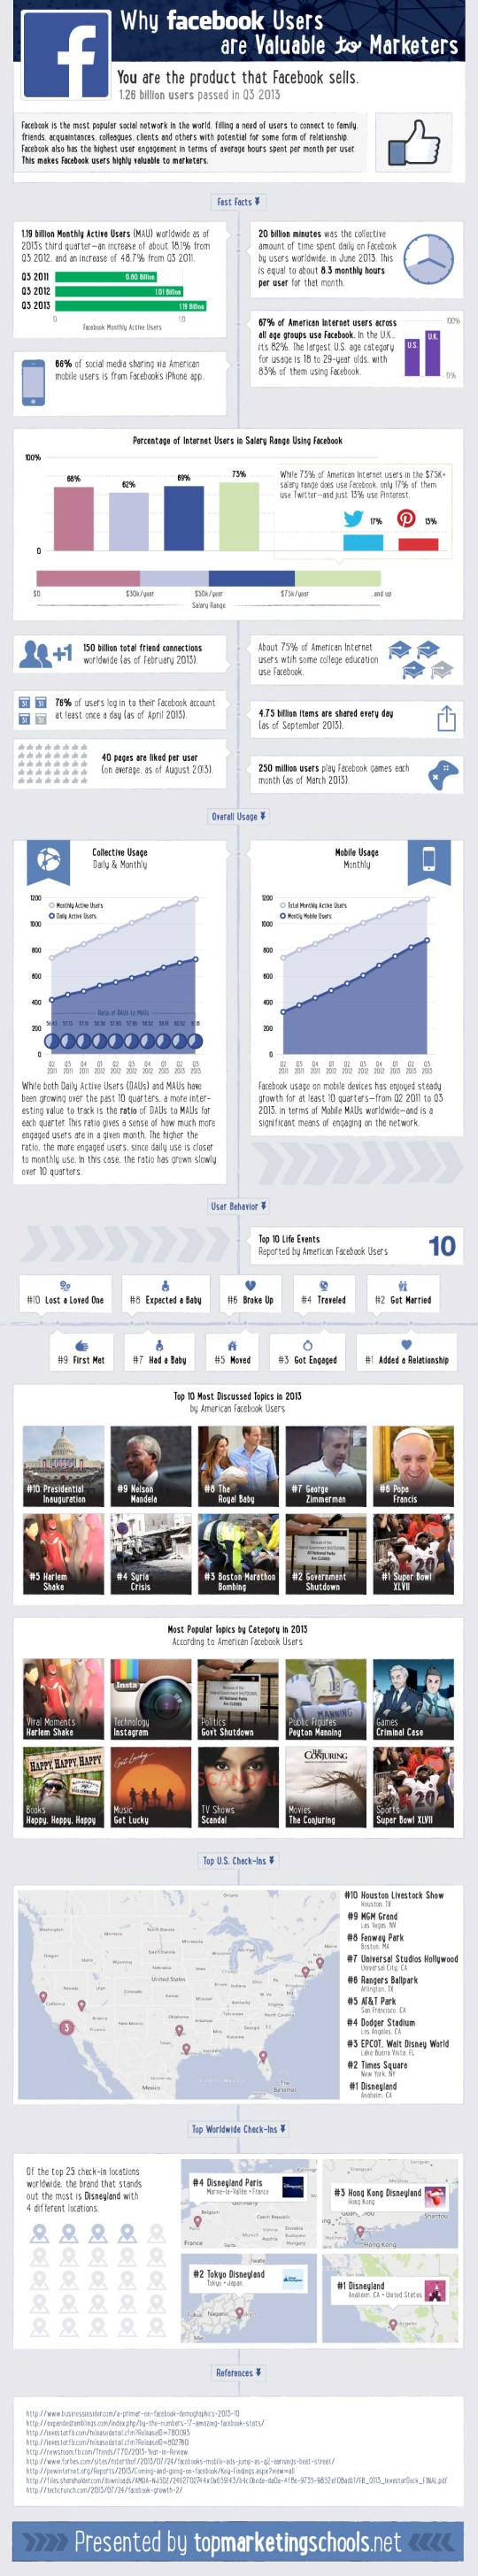 Why-Facebook-Users-Are-Valuable-To-Marketers-Infographic-infographicsmania